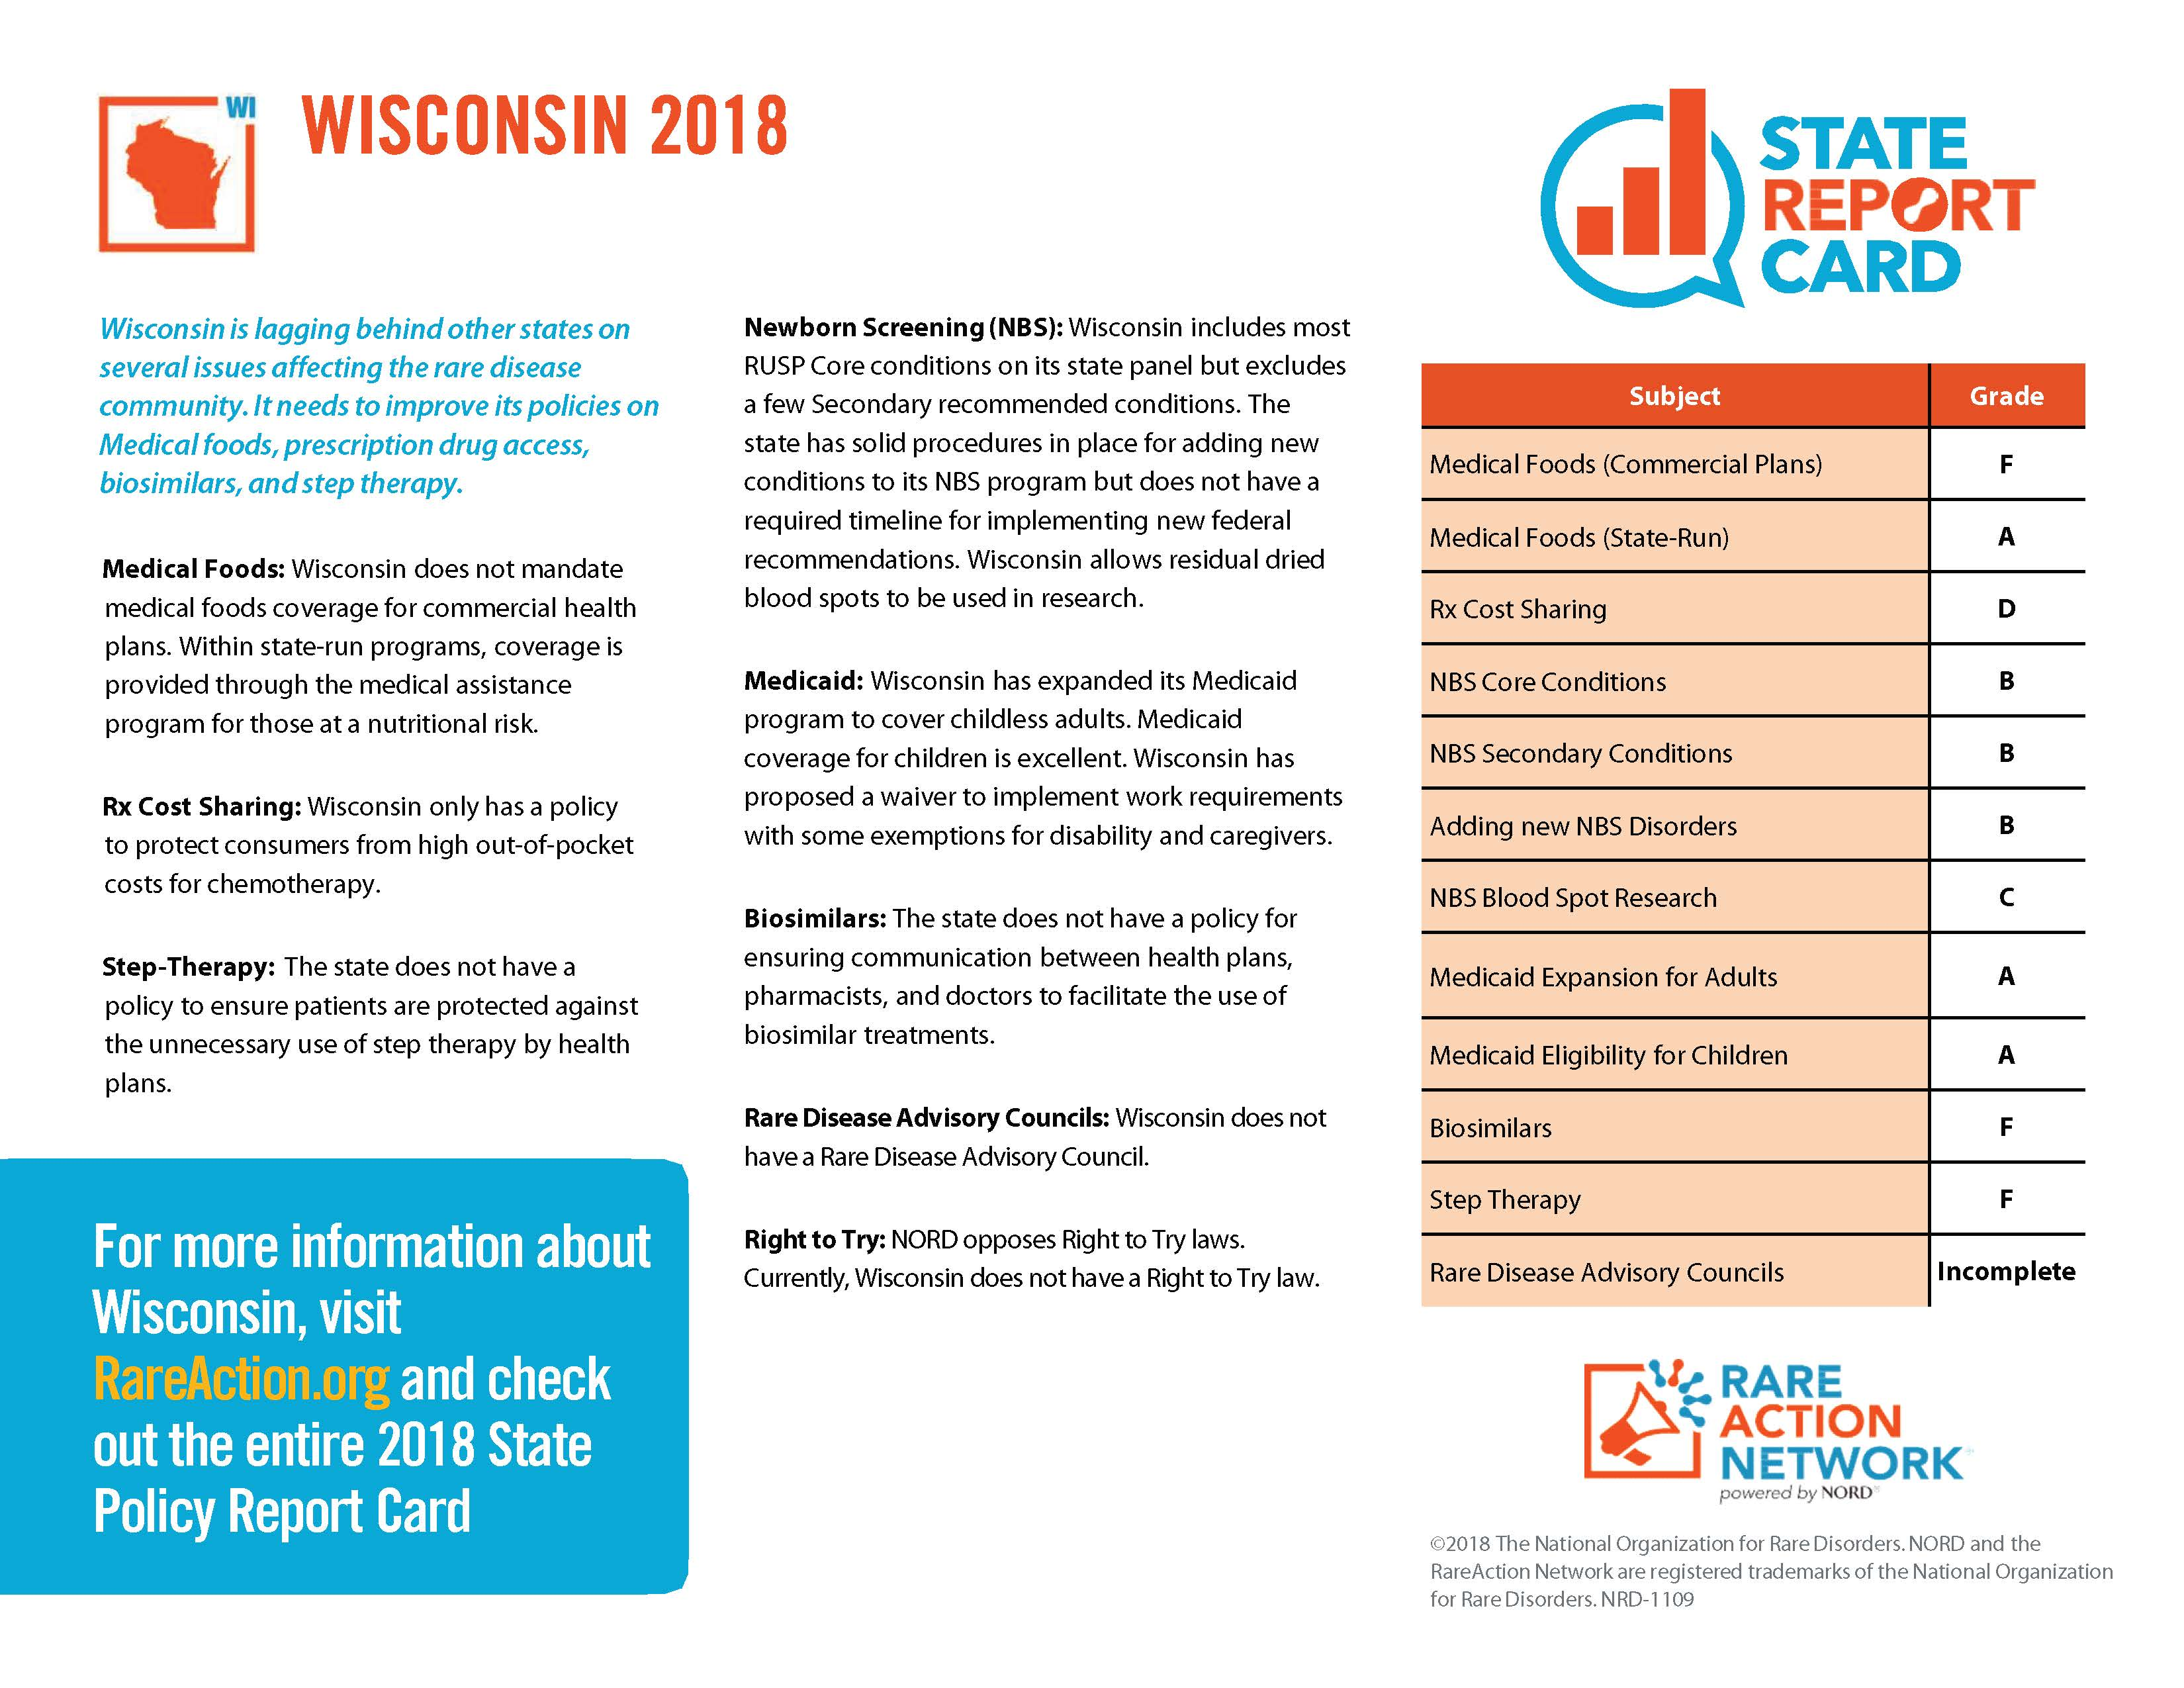 NORD State Report Card WI 2018